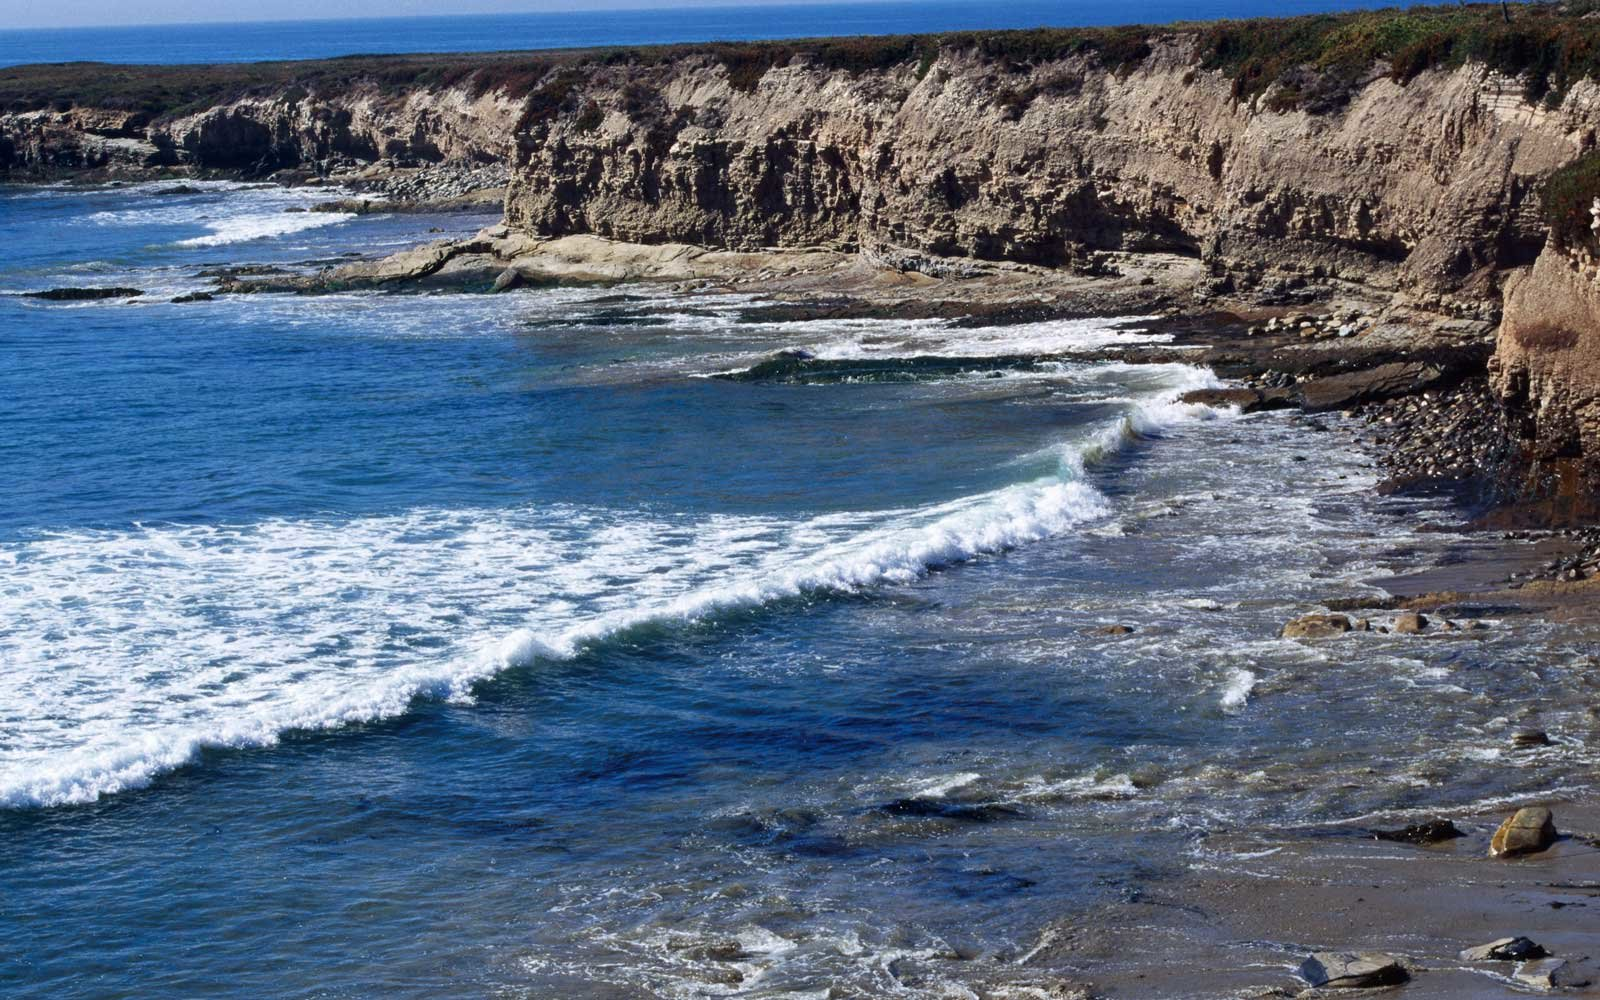 Bixby Ranch Coastline in California